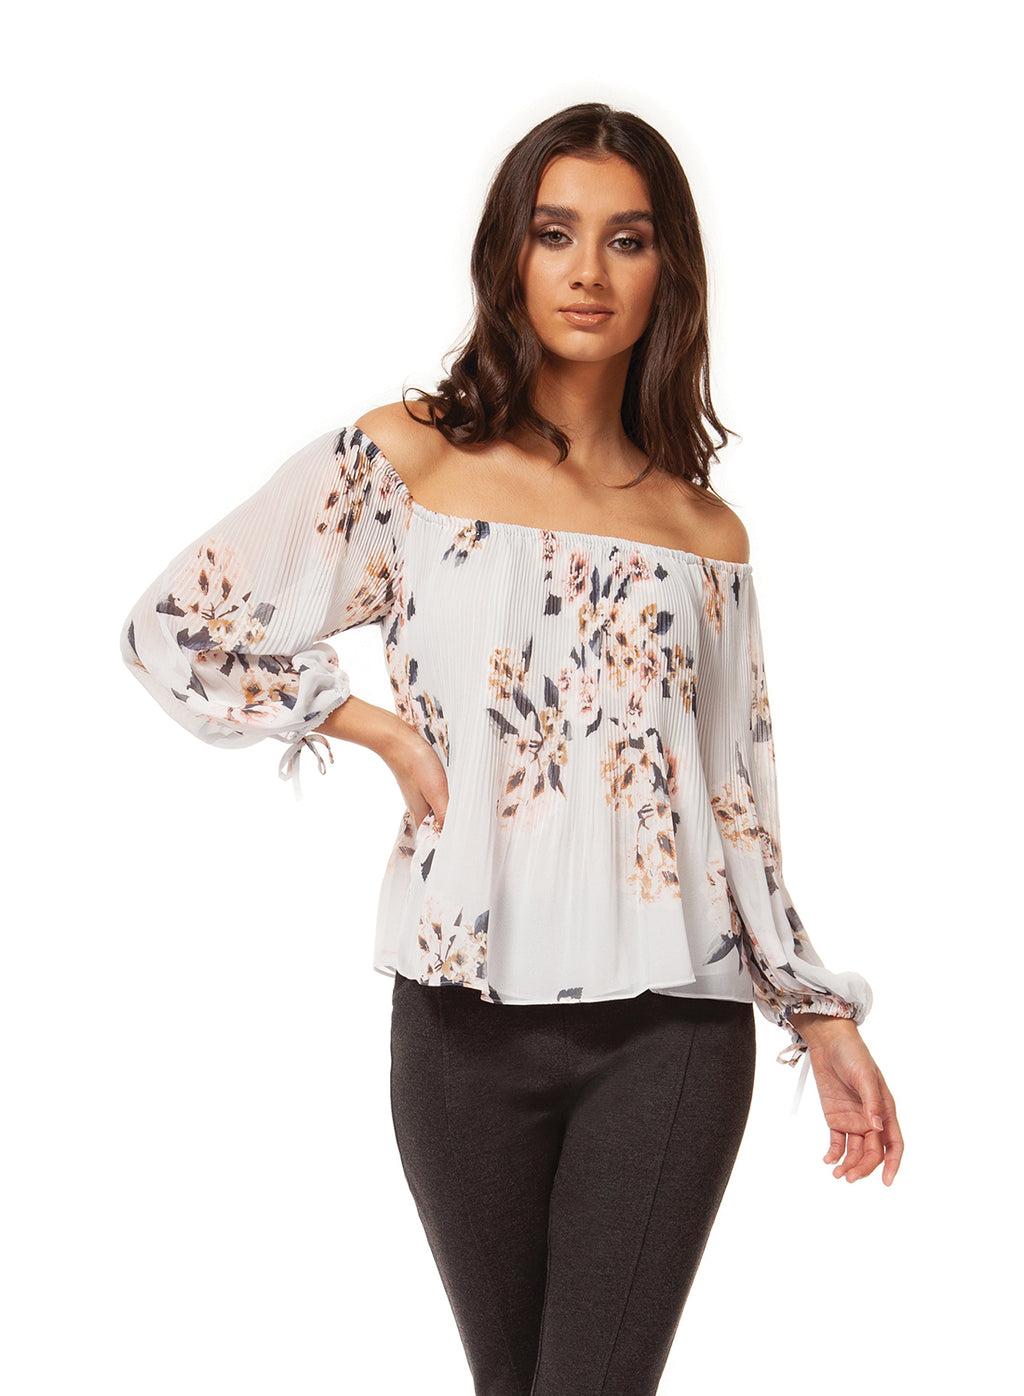 NEW Dex printed floral top!